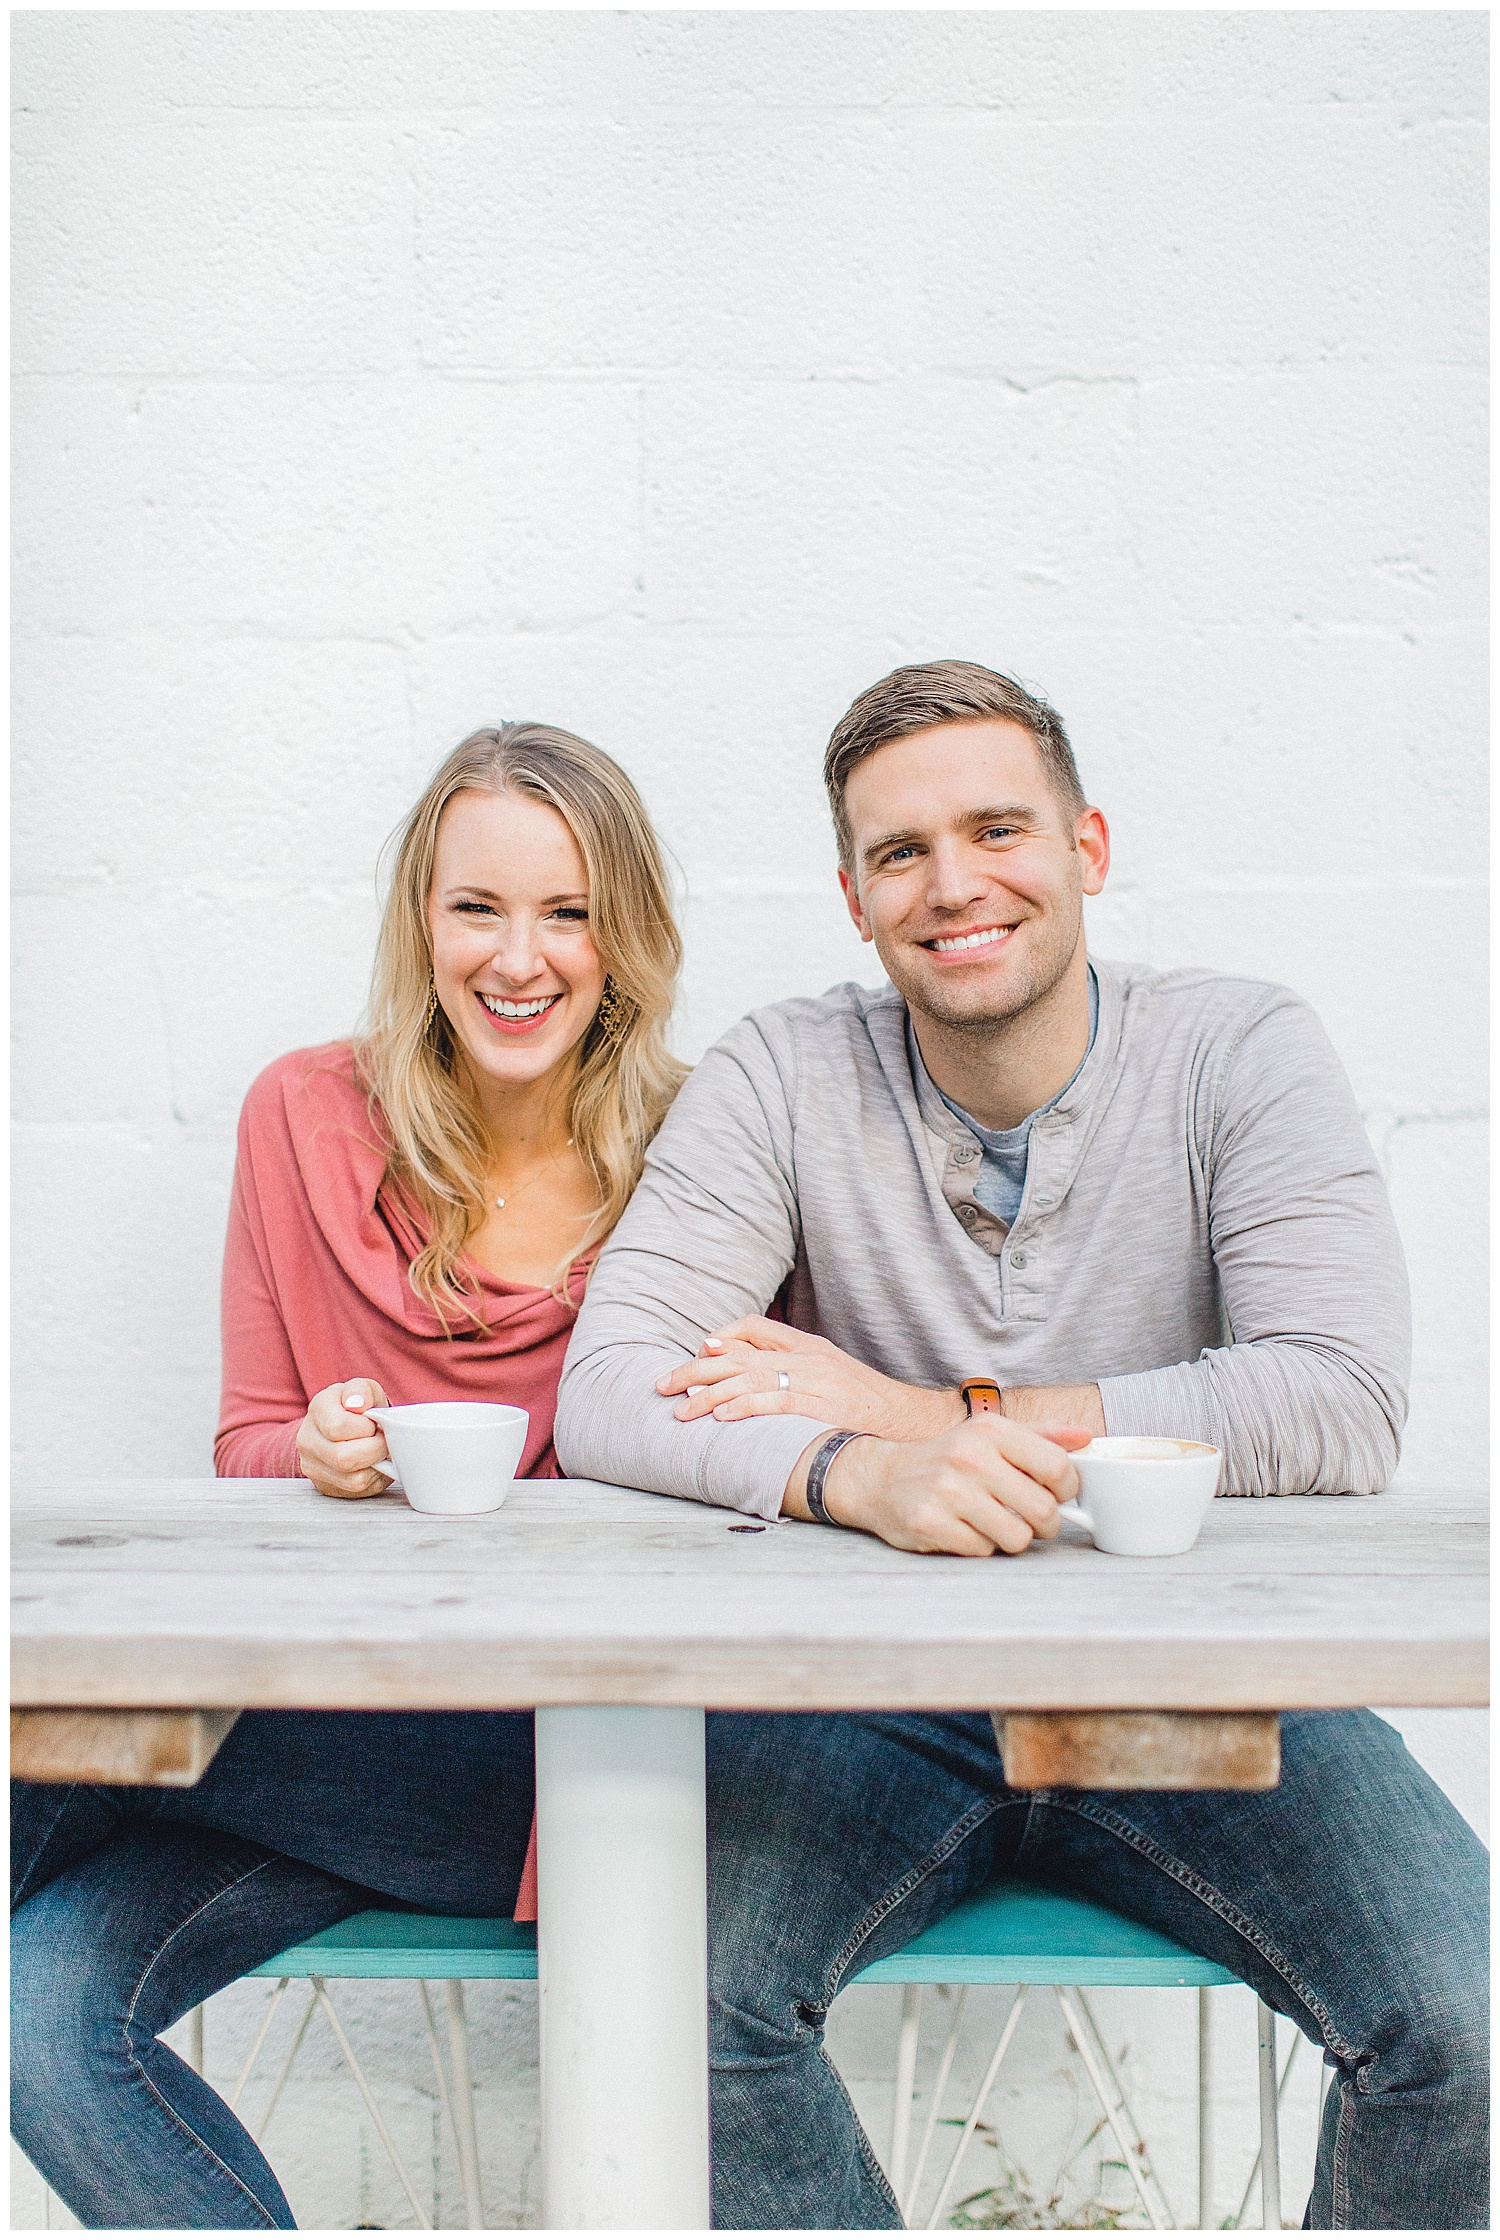 ERC_0970_Downtown Nashville Engagement Session at Barista Parlor | Emma Rose Company Wedding Photographer | Outfit Inspiration for Engagement Session | Kindred Light and Airy Photographer.jpg